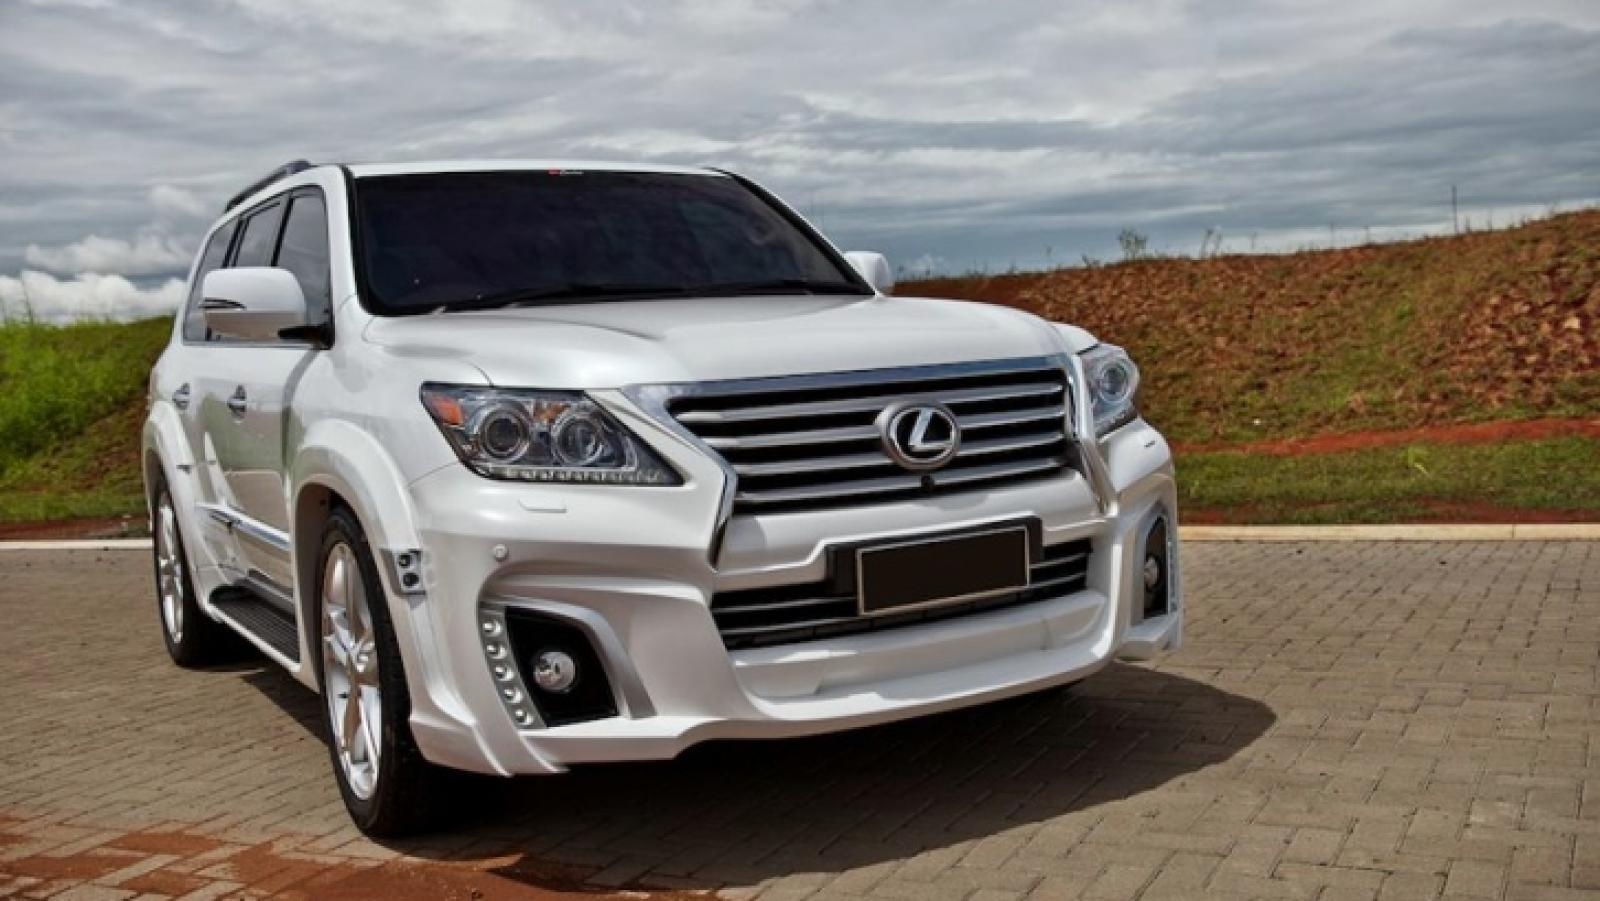 2015 lexus lx 570 - information and photos - zombiedrive